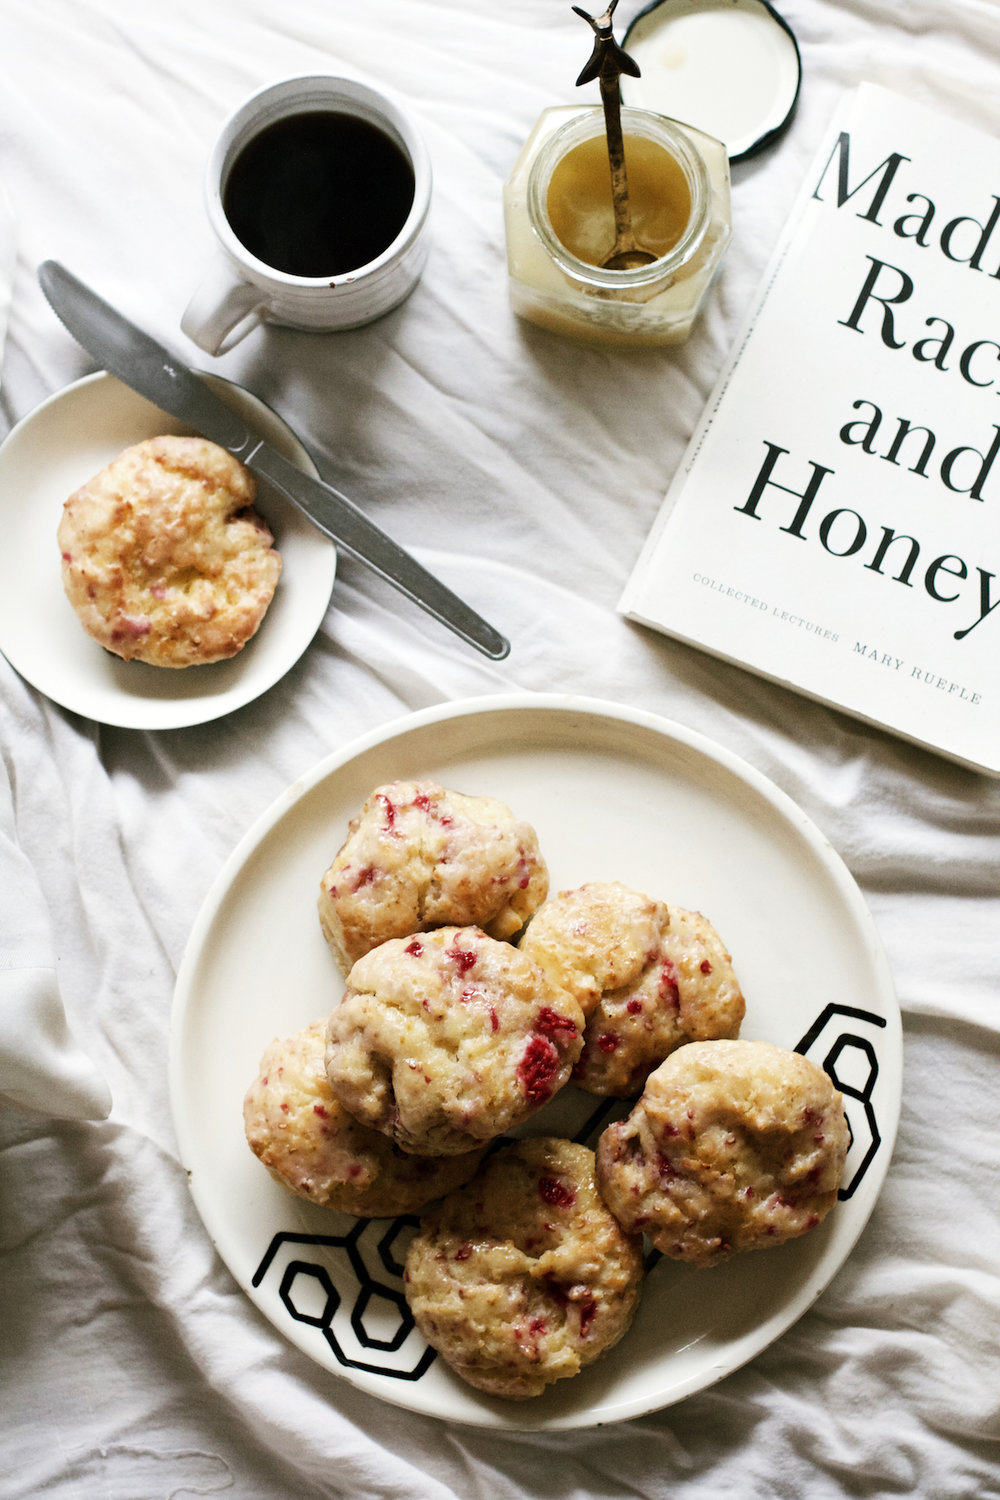 Honey-Glazed Raspberry Lemon Scones / Madness, Rack, + Honey / Books + Breakfast by Ruby Josephine